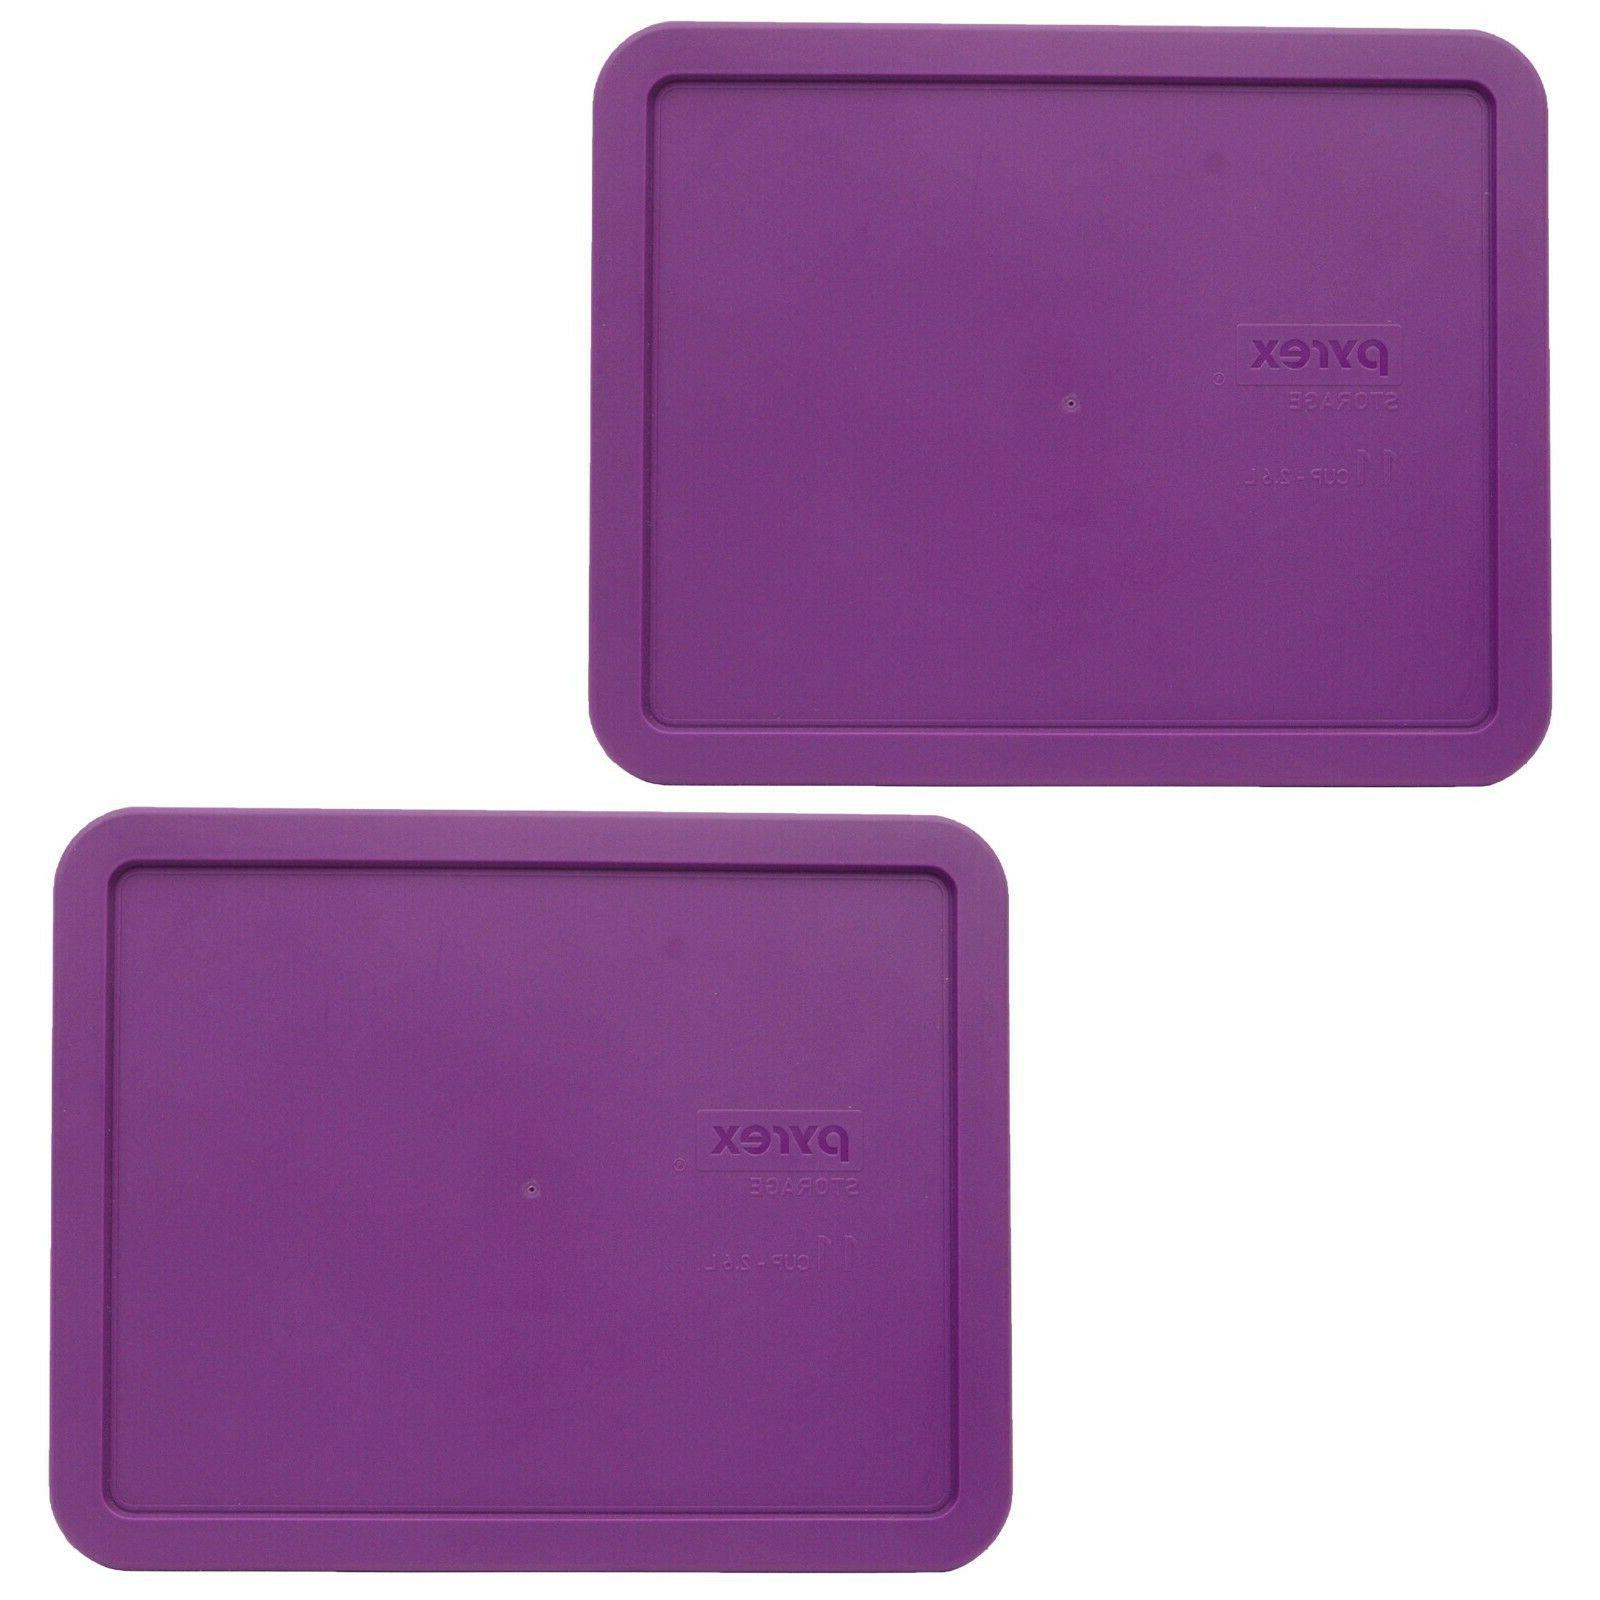 7212 pc thistle purple food storage replacement